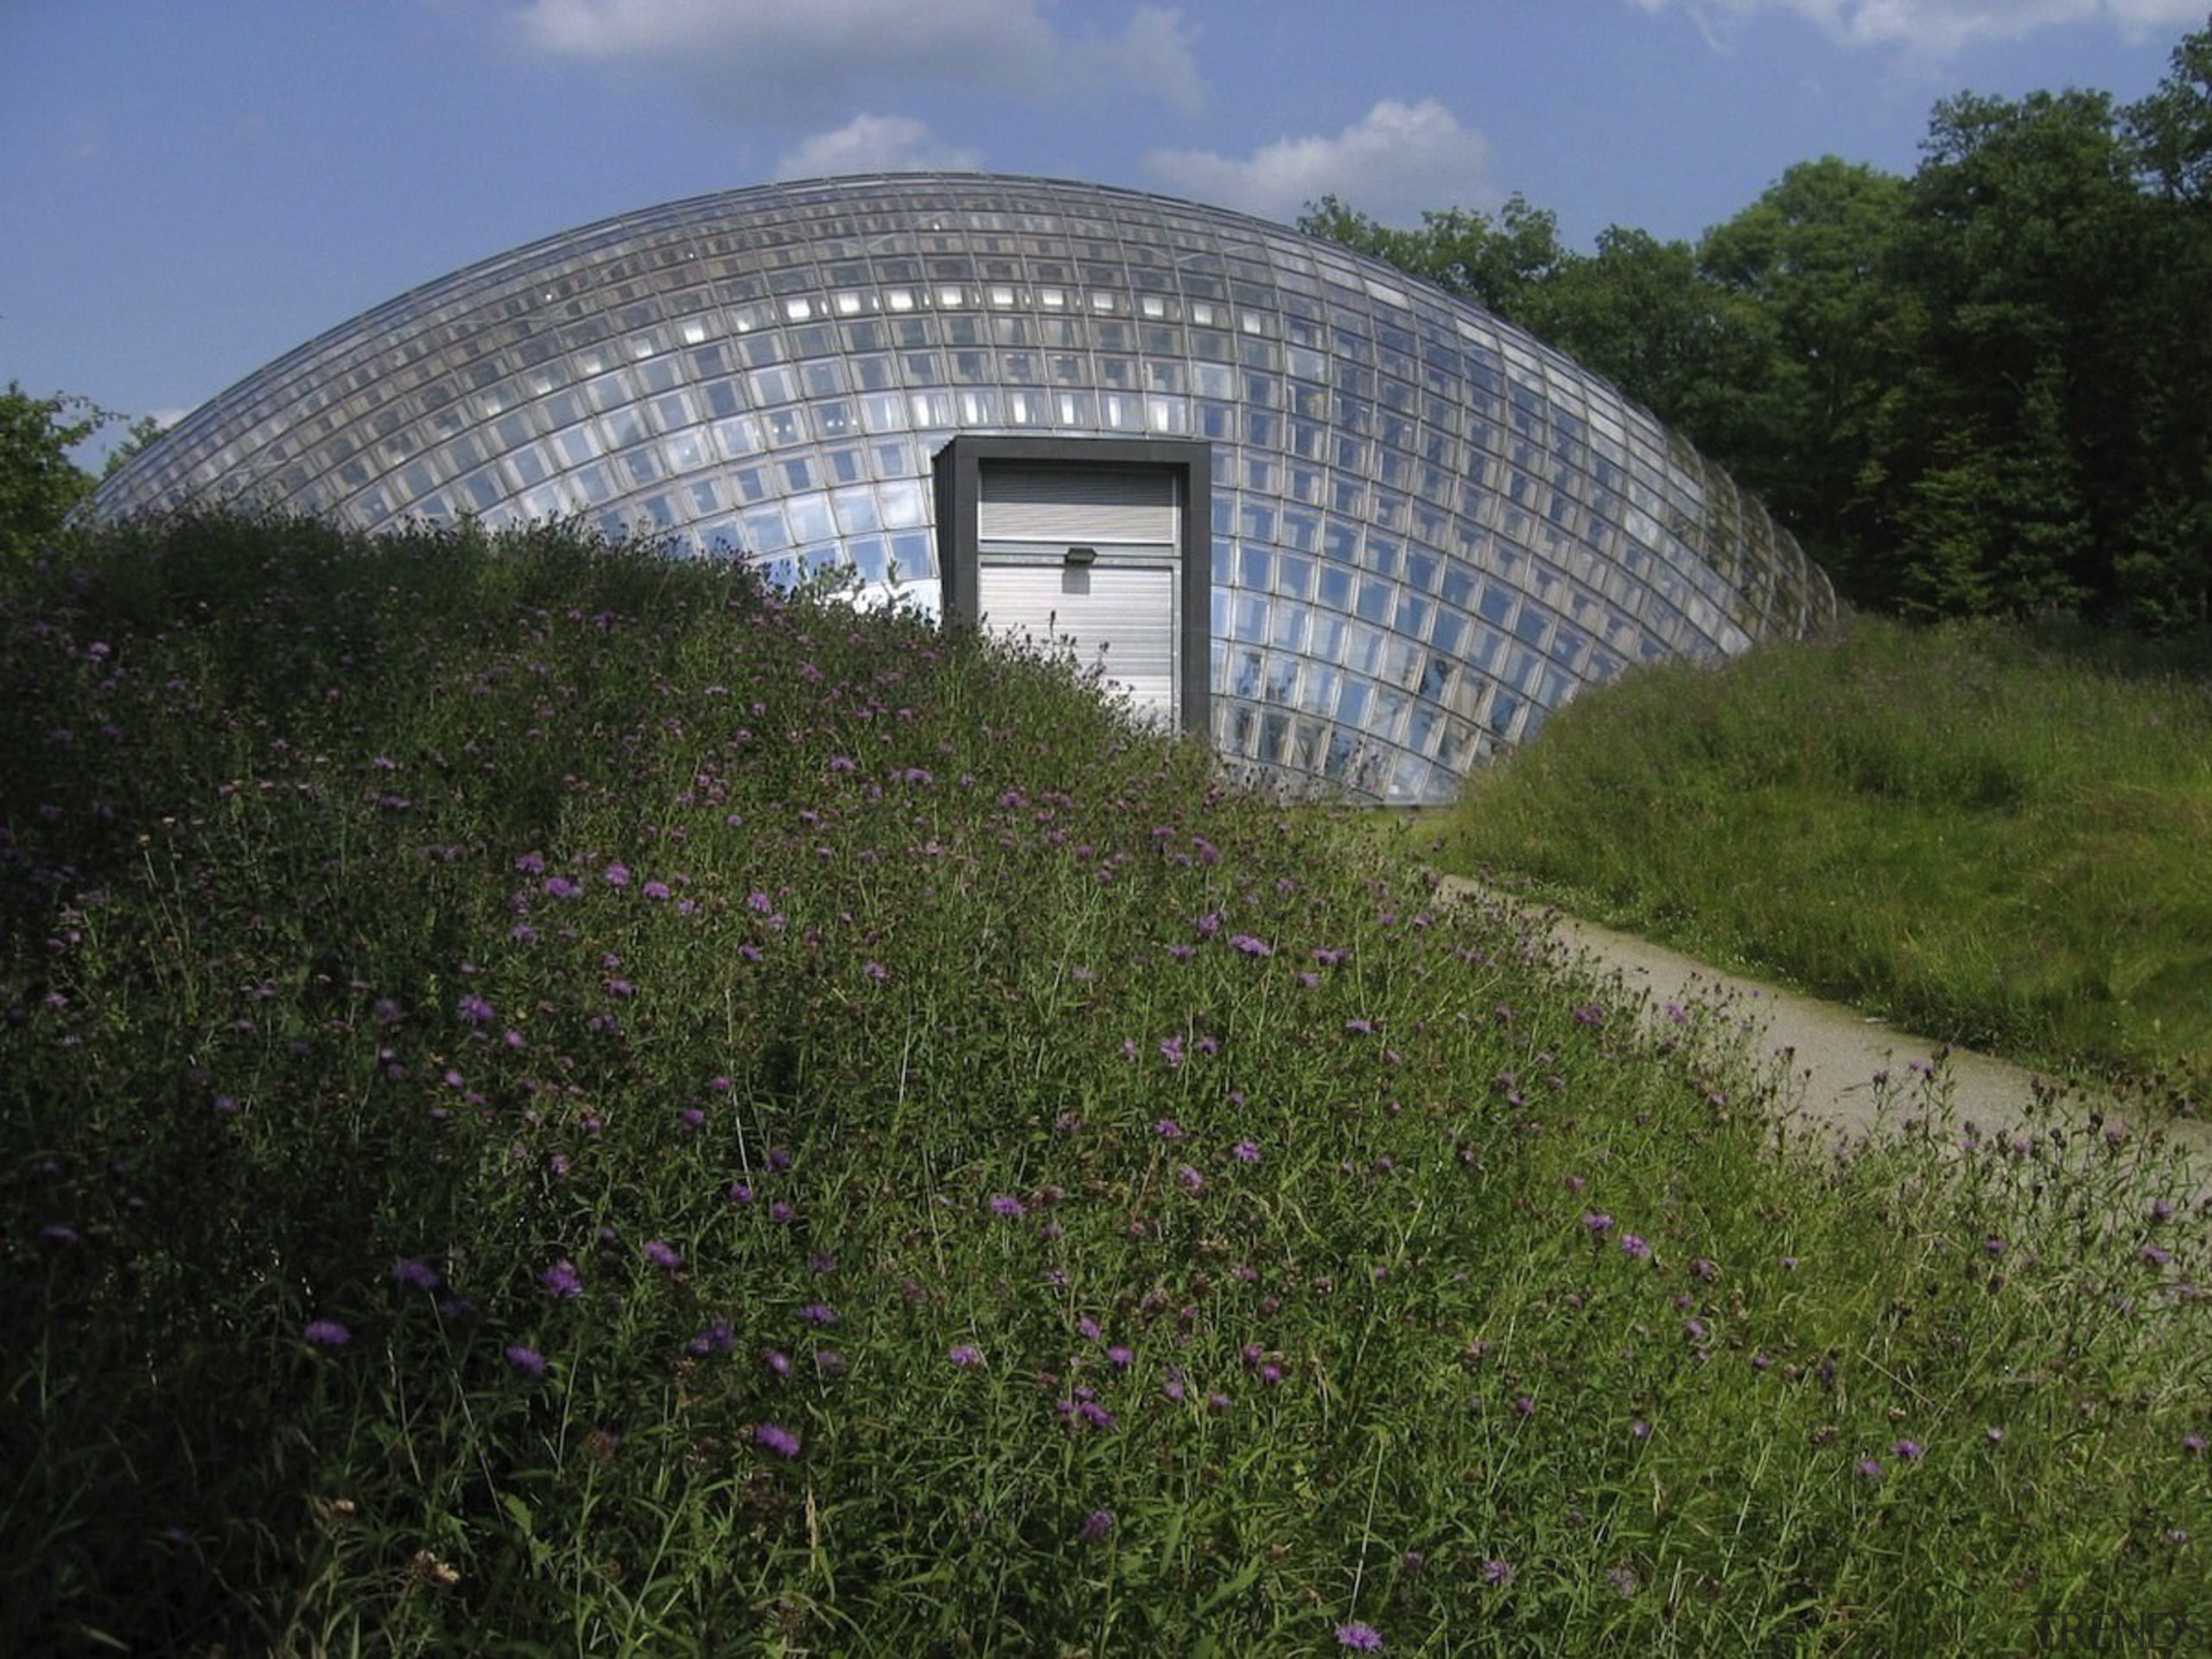 Forestry Branch – Marche-en-Famenne - Forestry Branch – architecture, biome, garden, grass, greenhouse, meadow, plant, brown